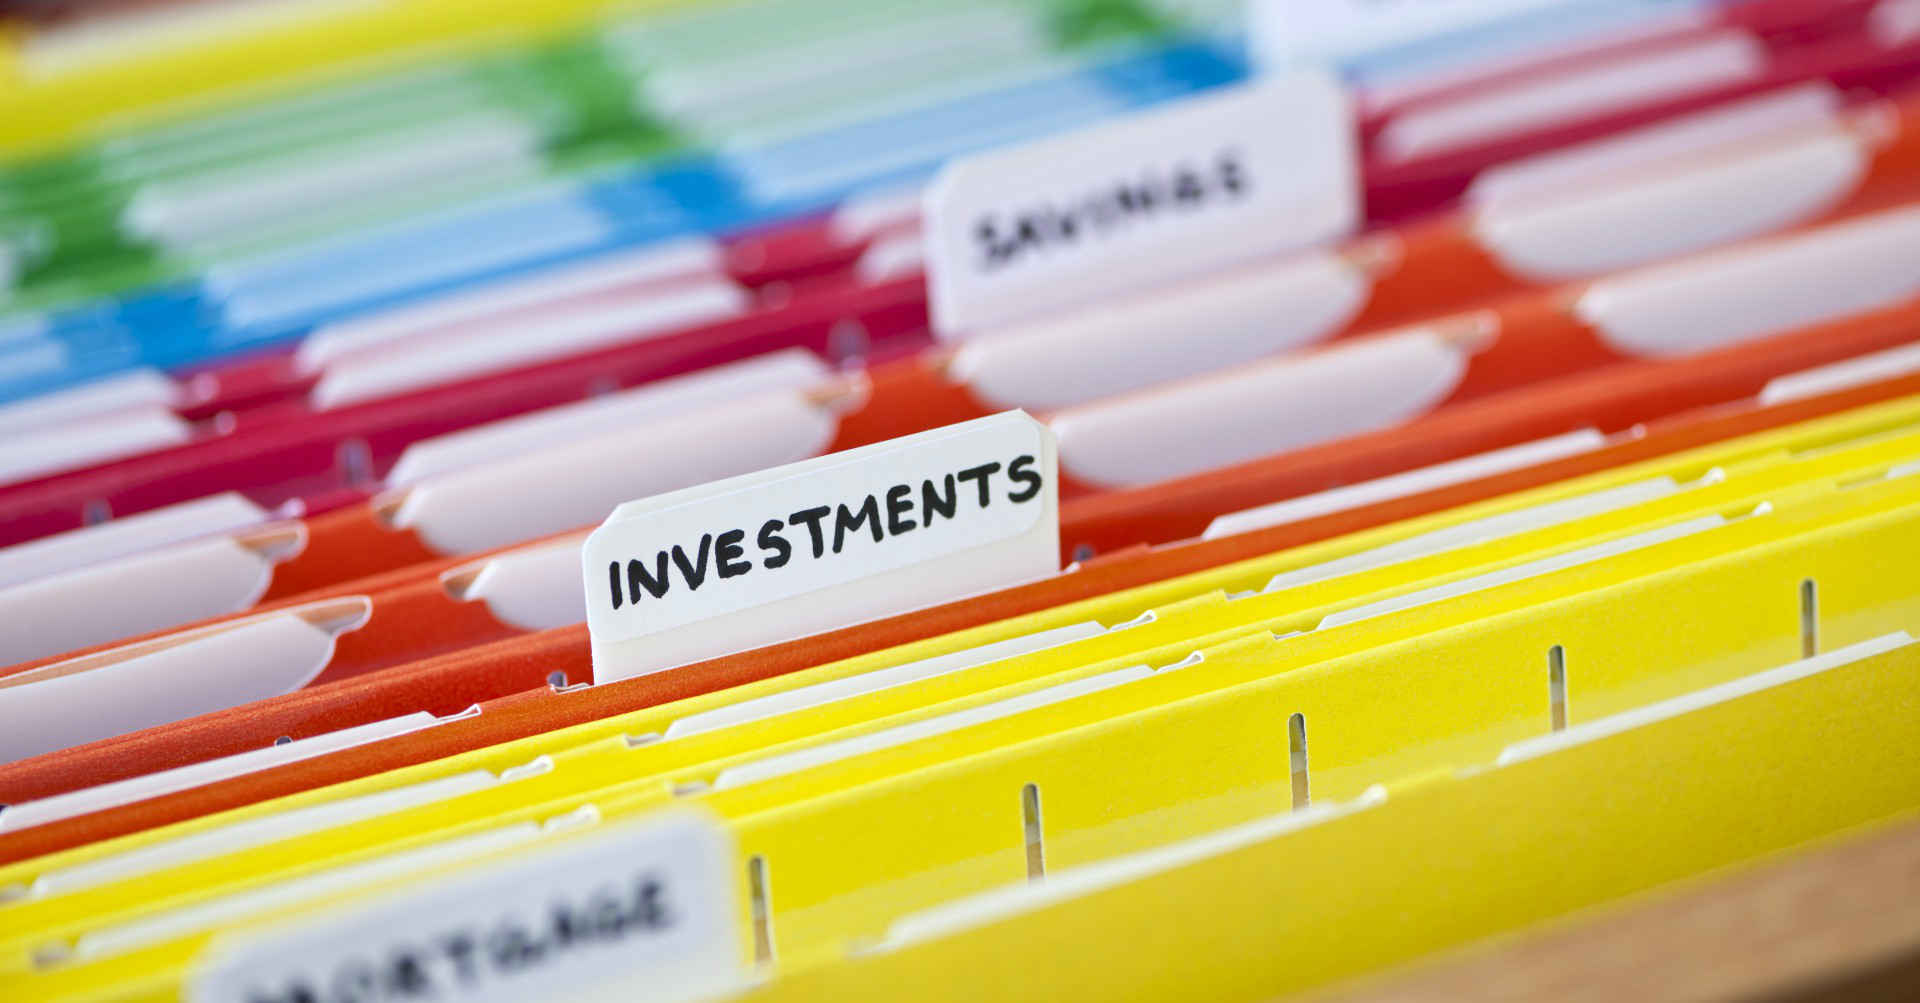 Unit trusts are good investments